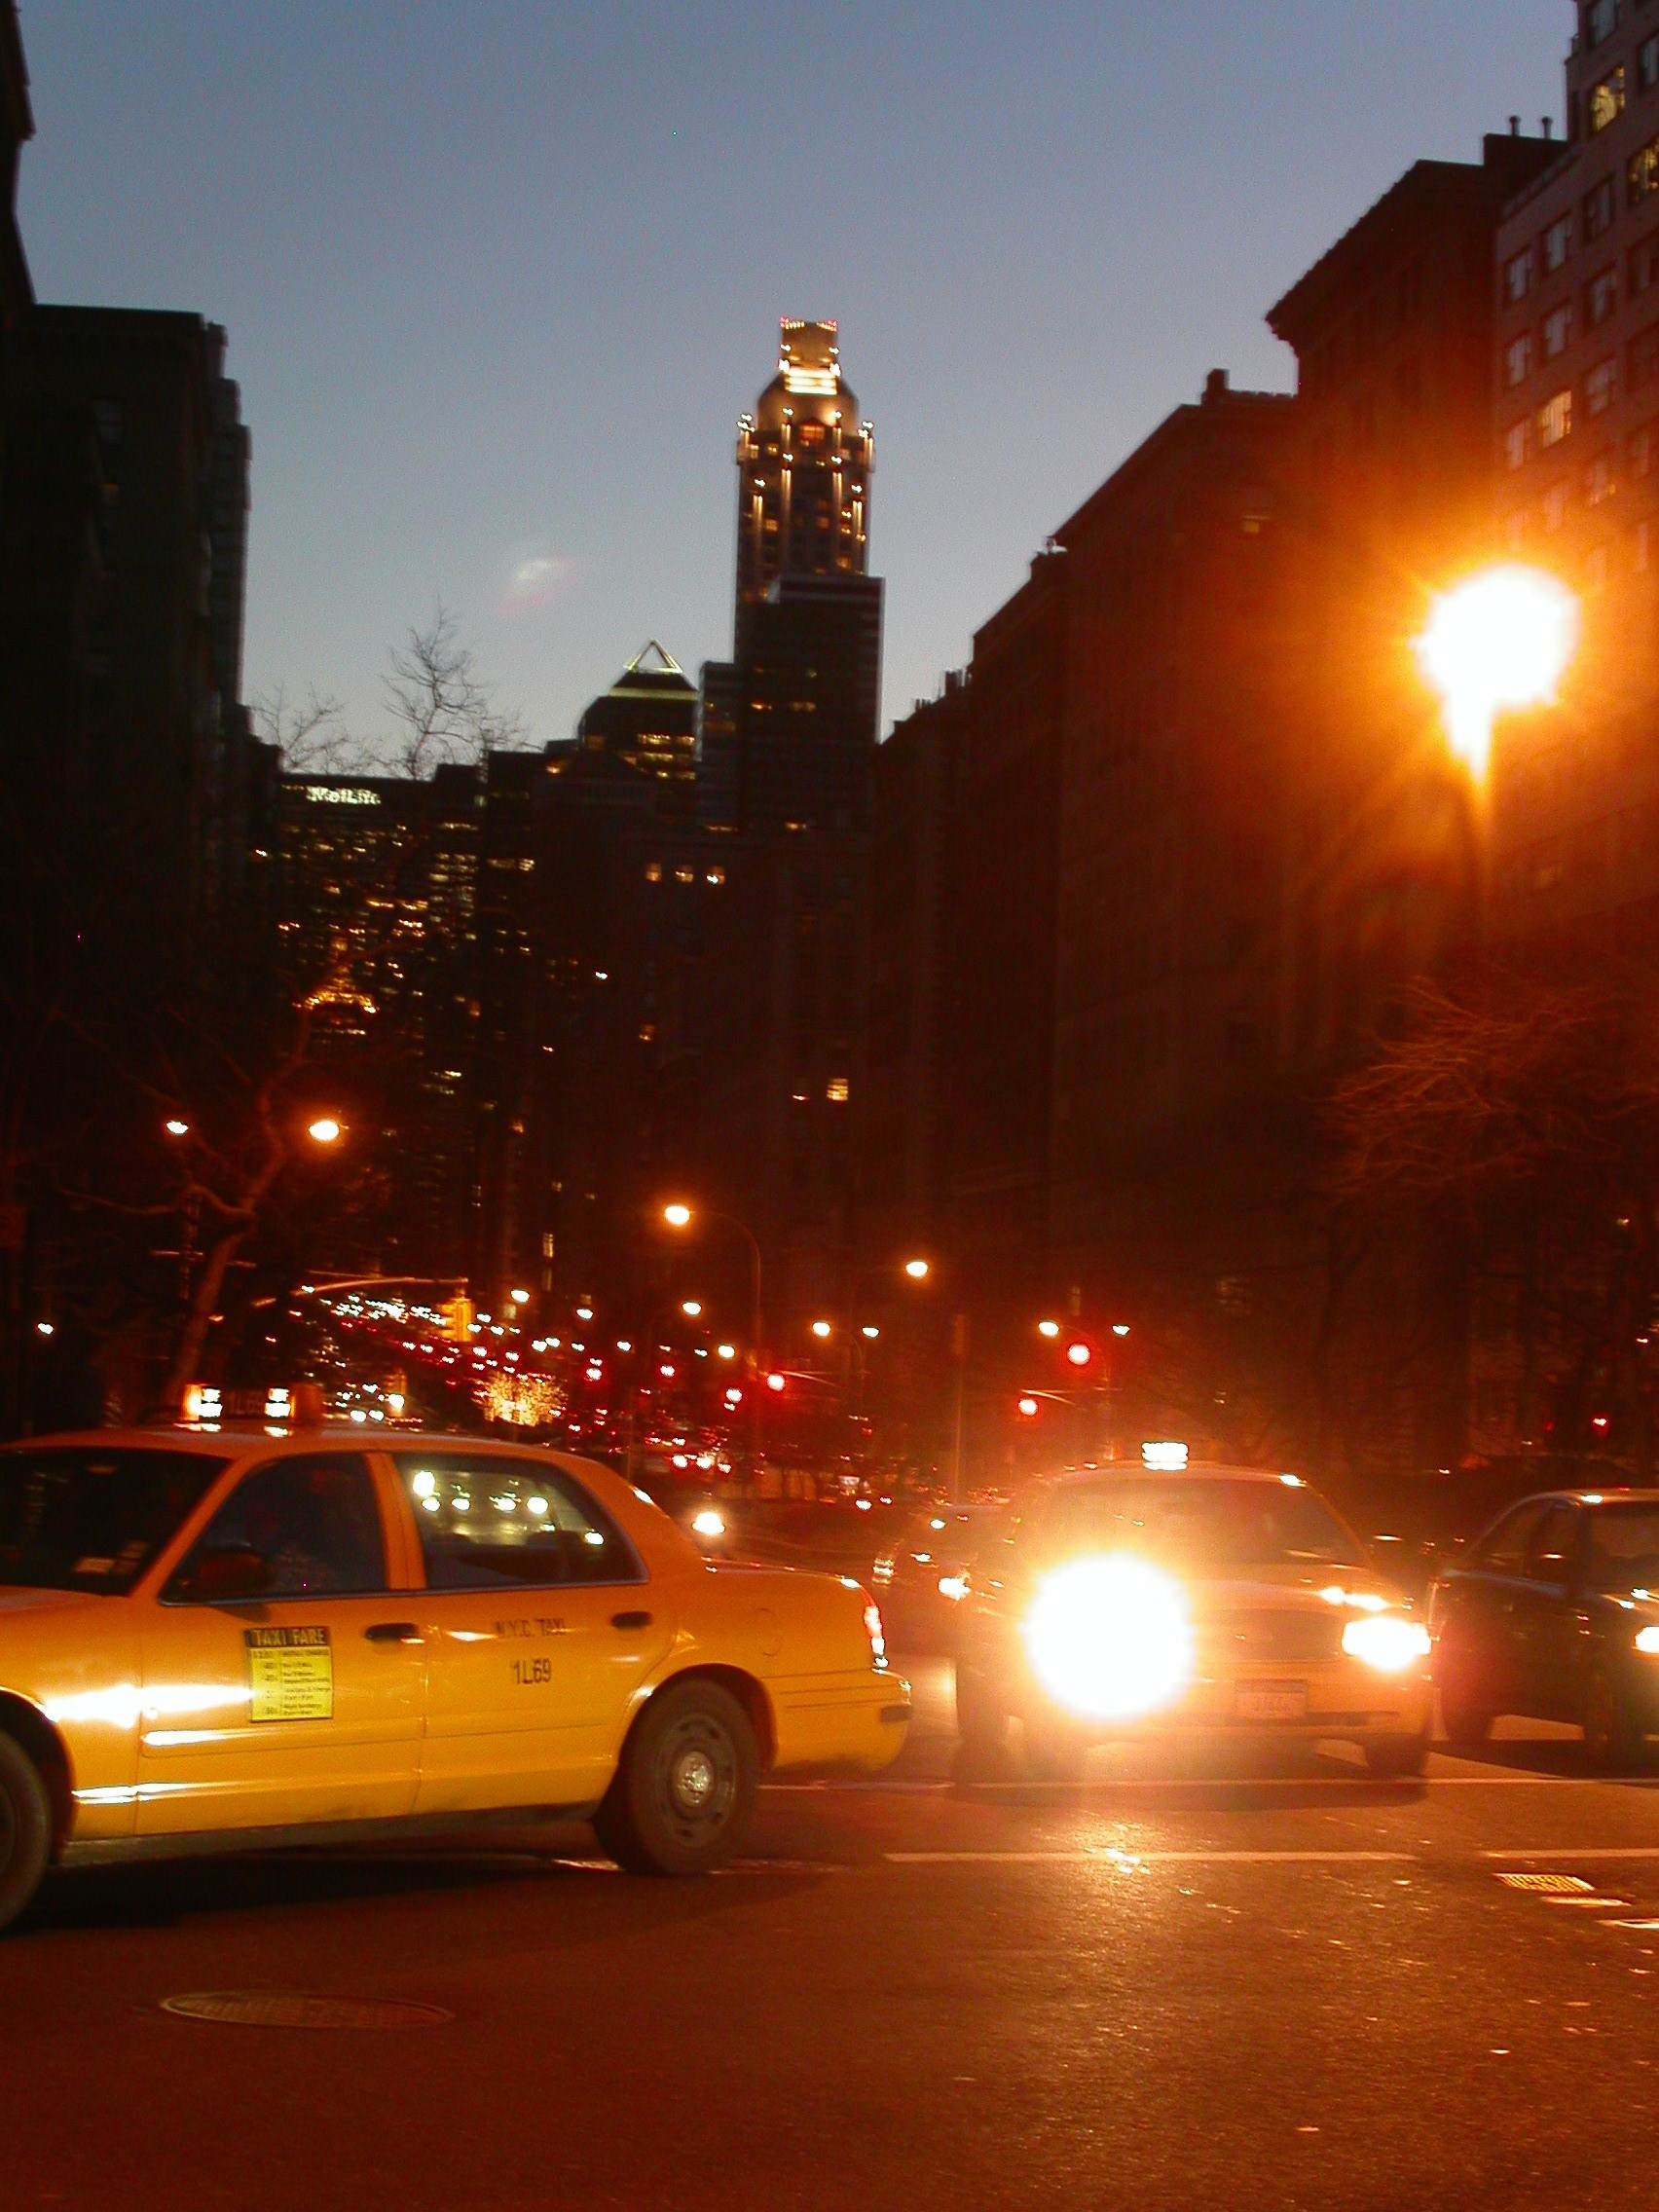 Three Months in a New York Minute